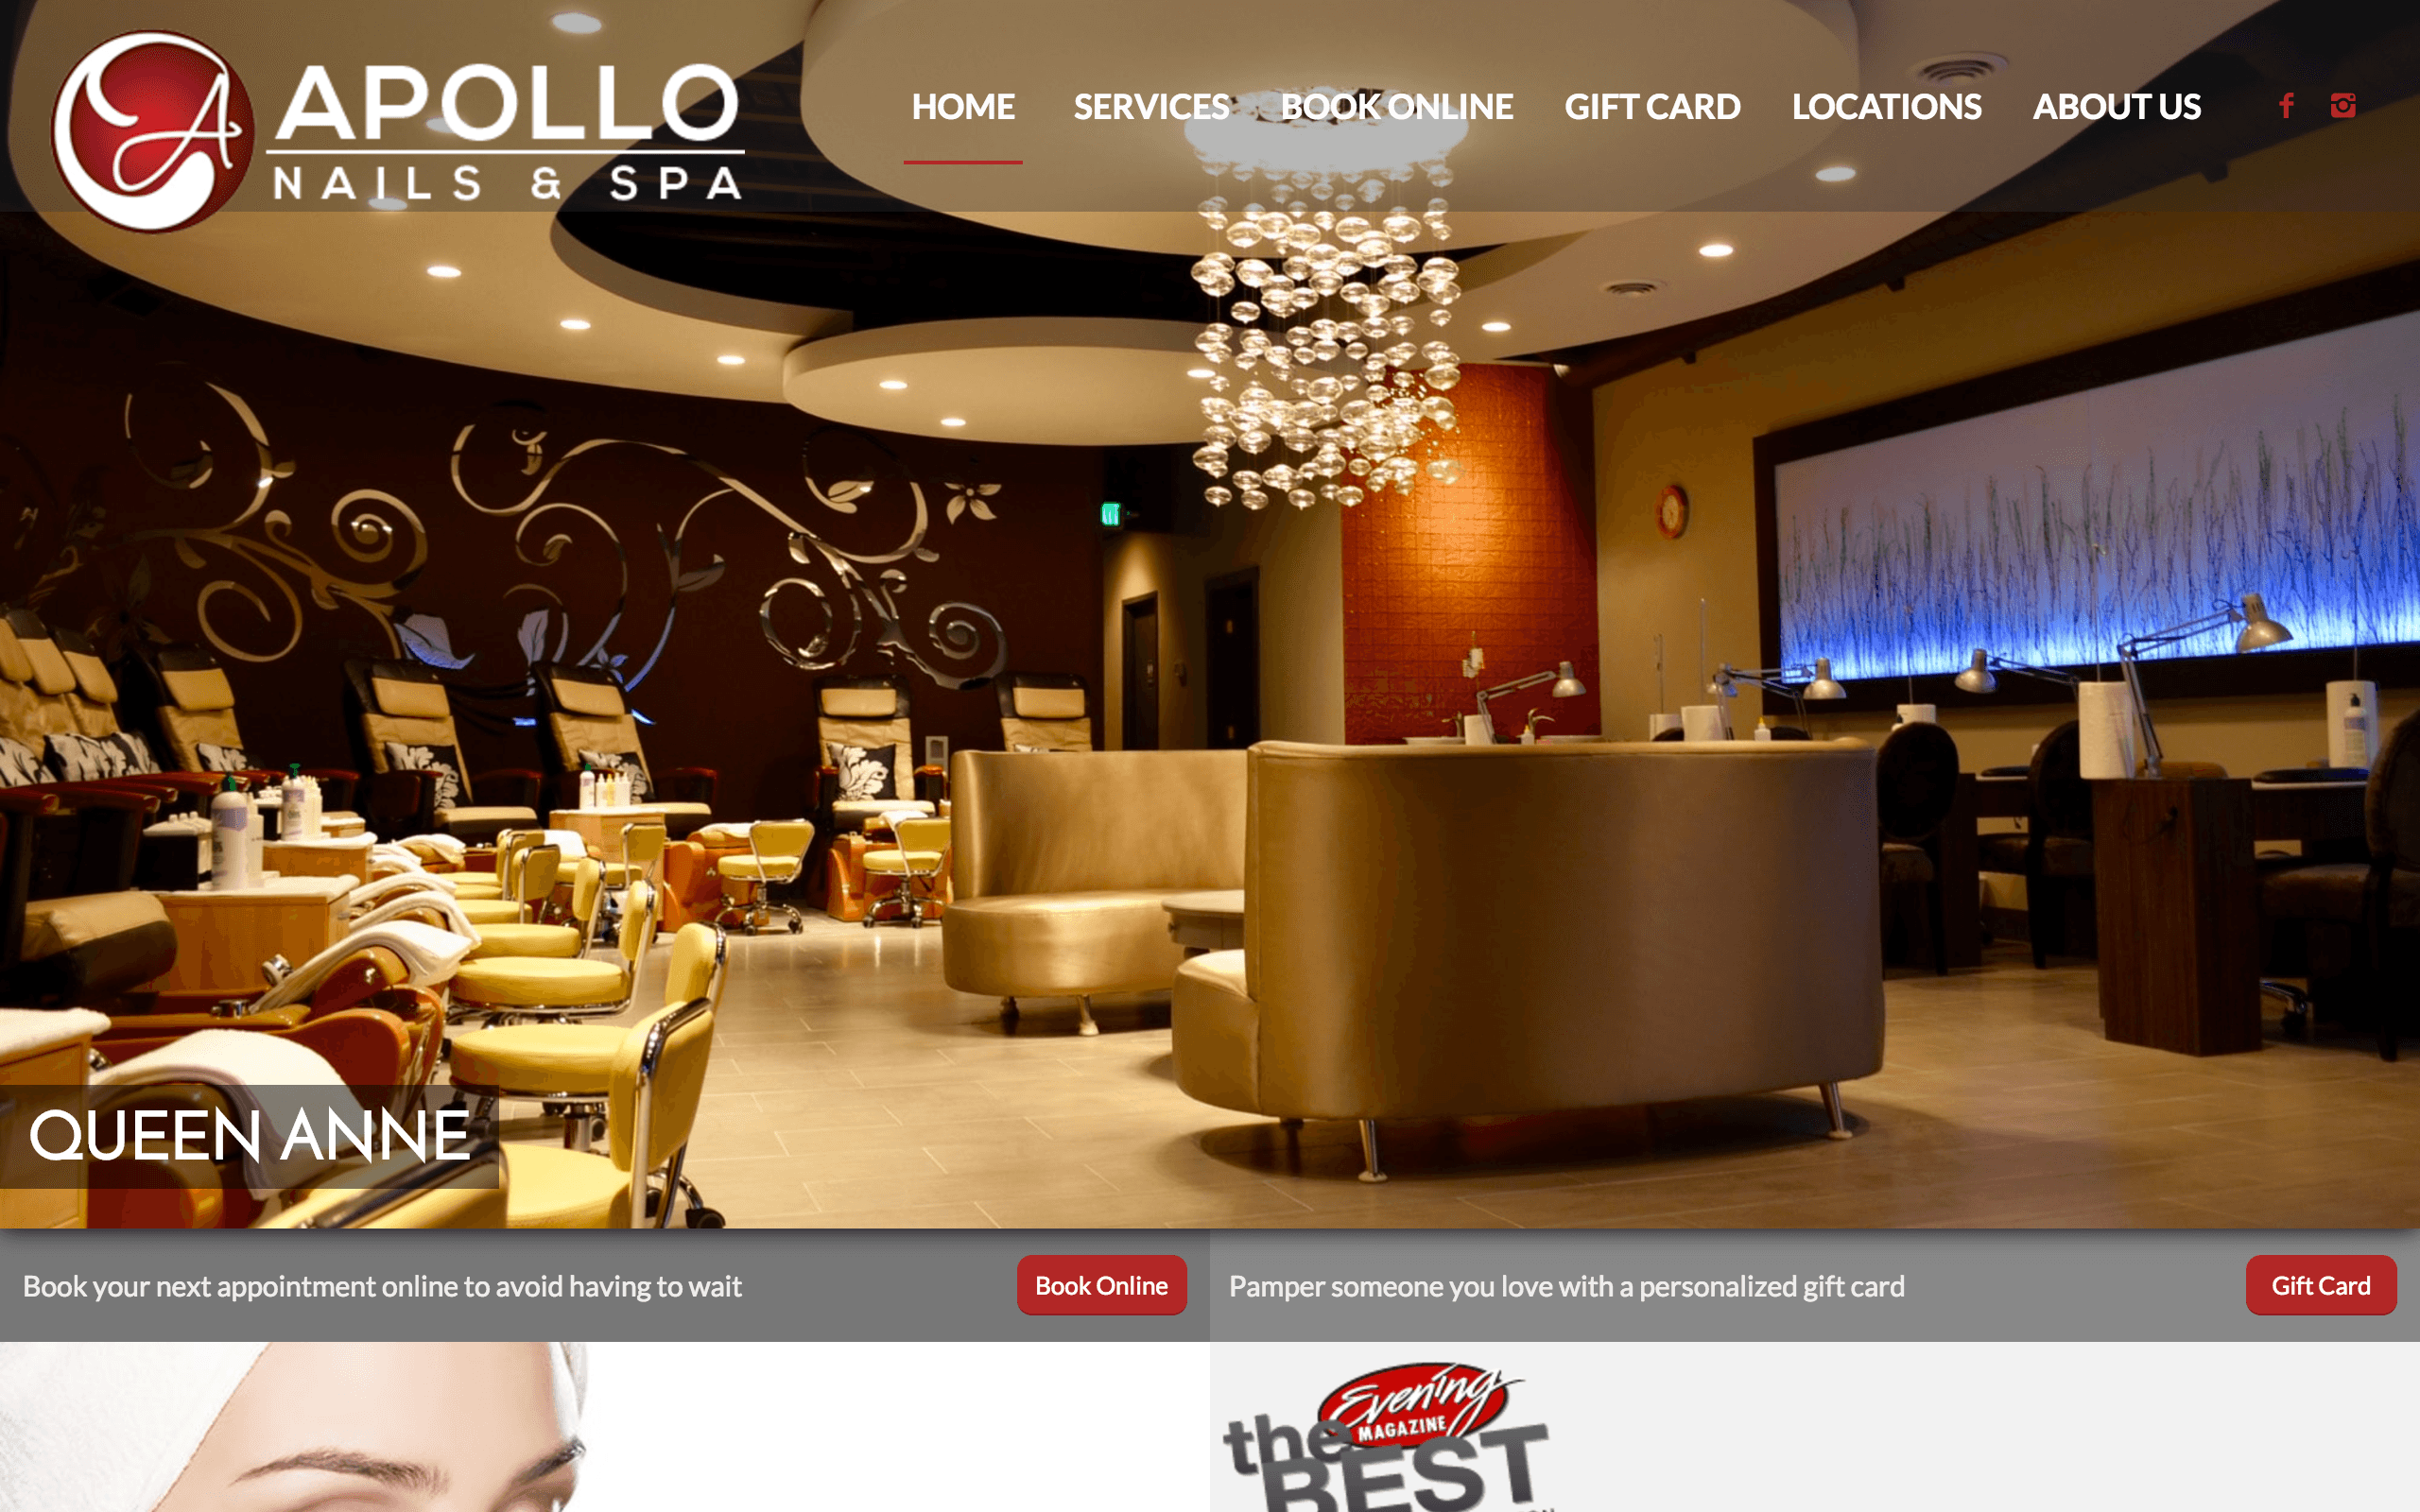 Apollo Nails & Spa | Seattle Poulsbo Silverdale | Nail Salon